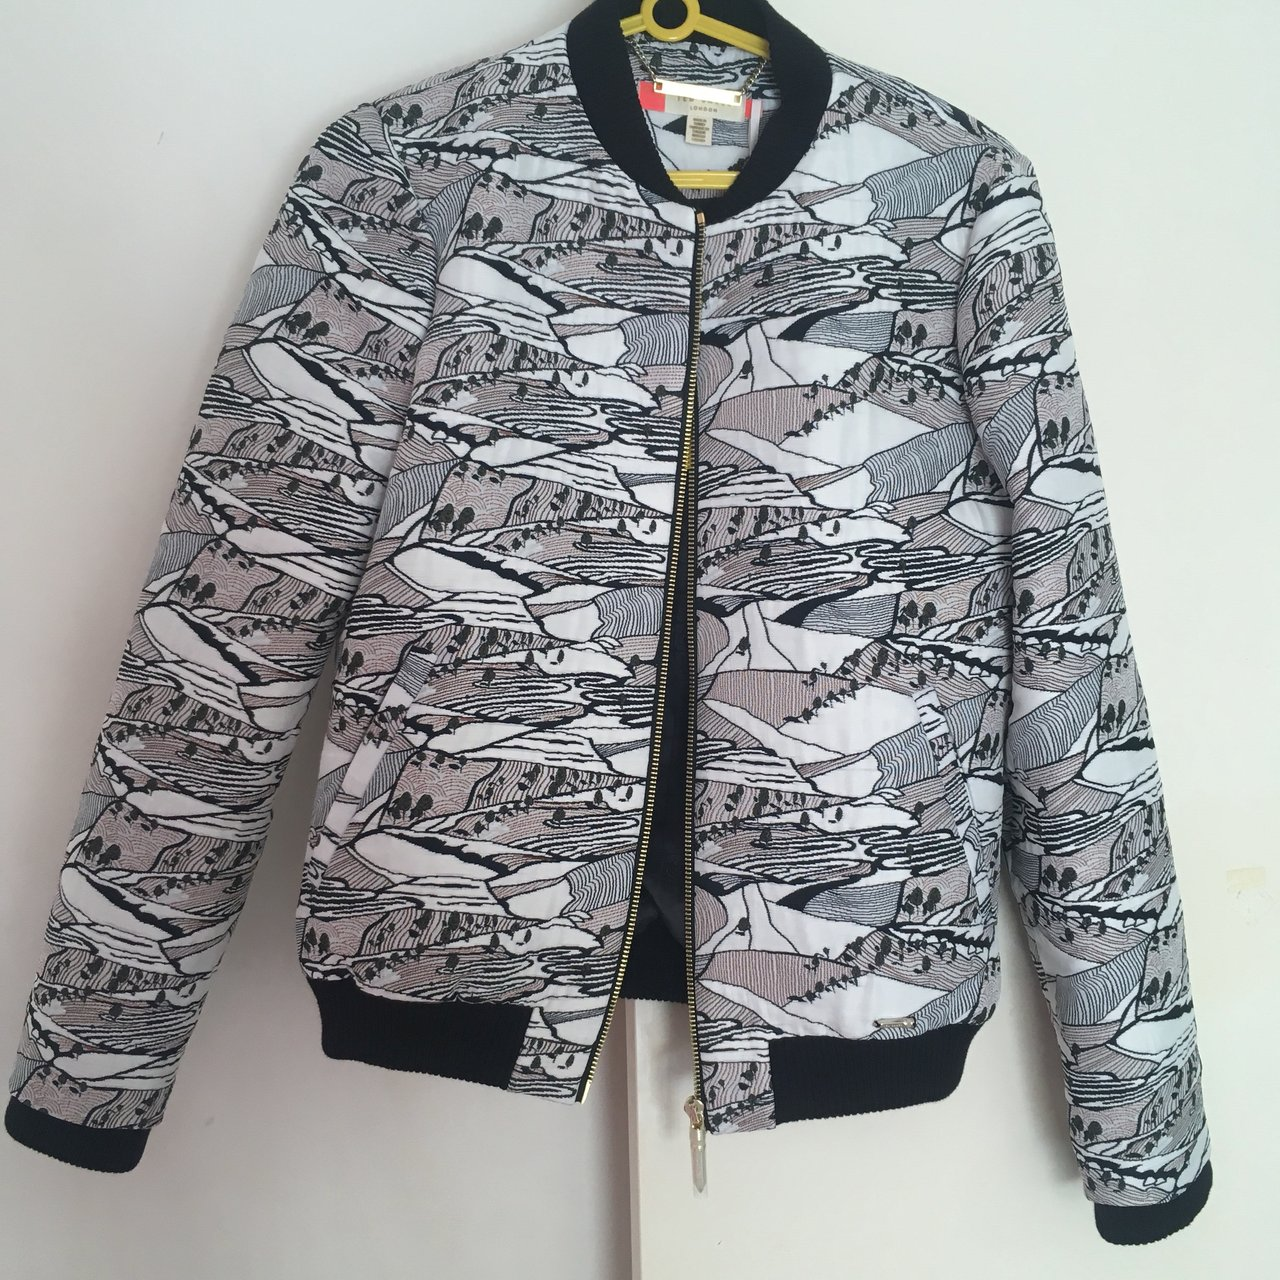 1e665f796 Selling this beautiful Ted Baker Landscape Bomber jacket in - Depop